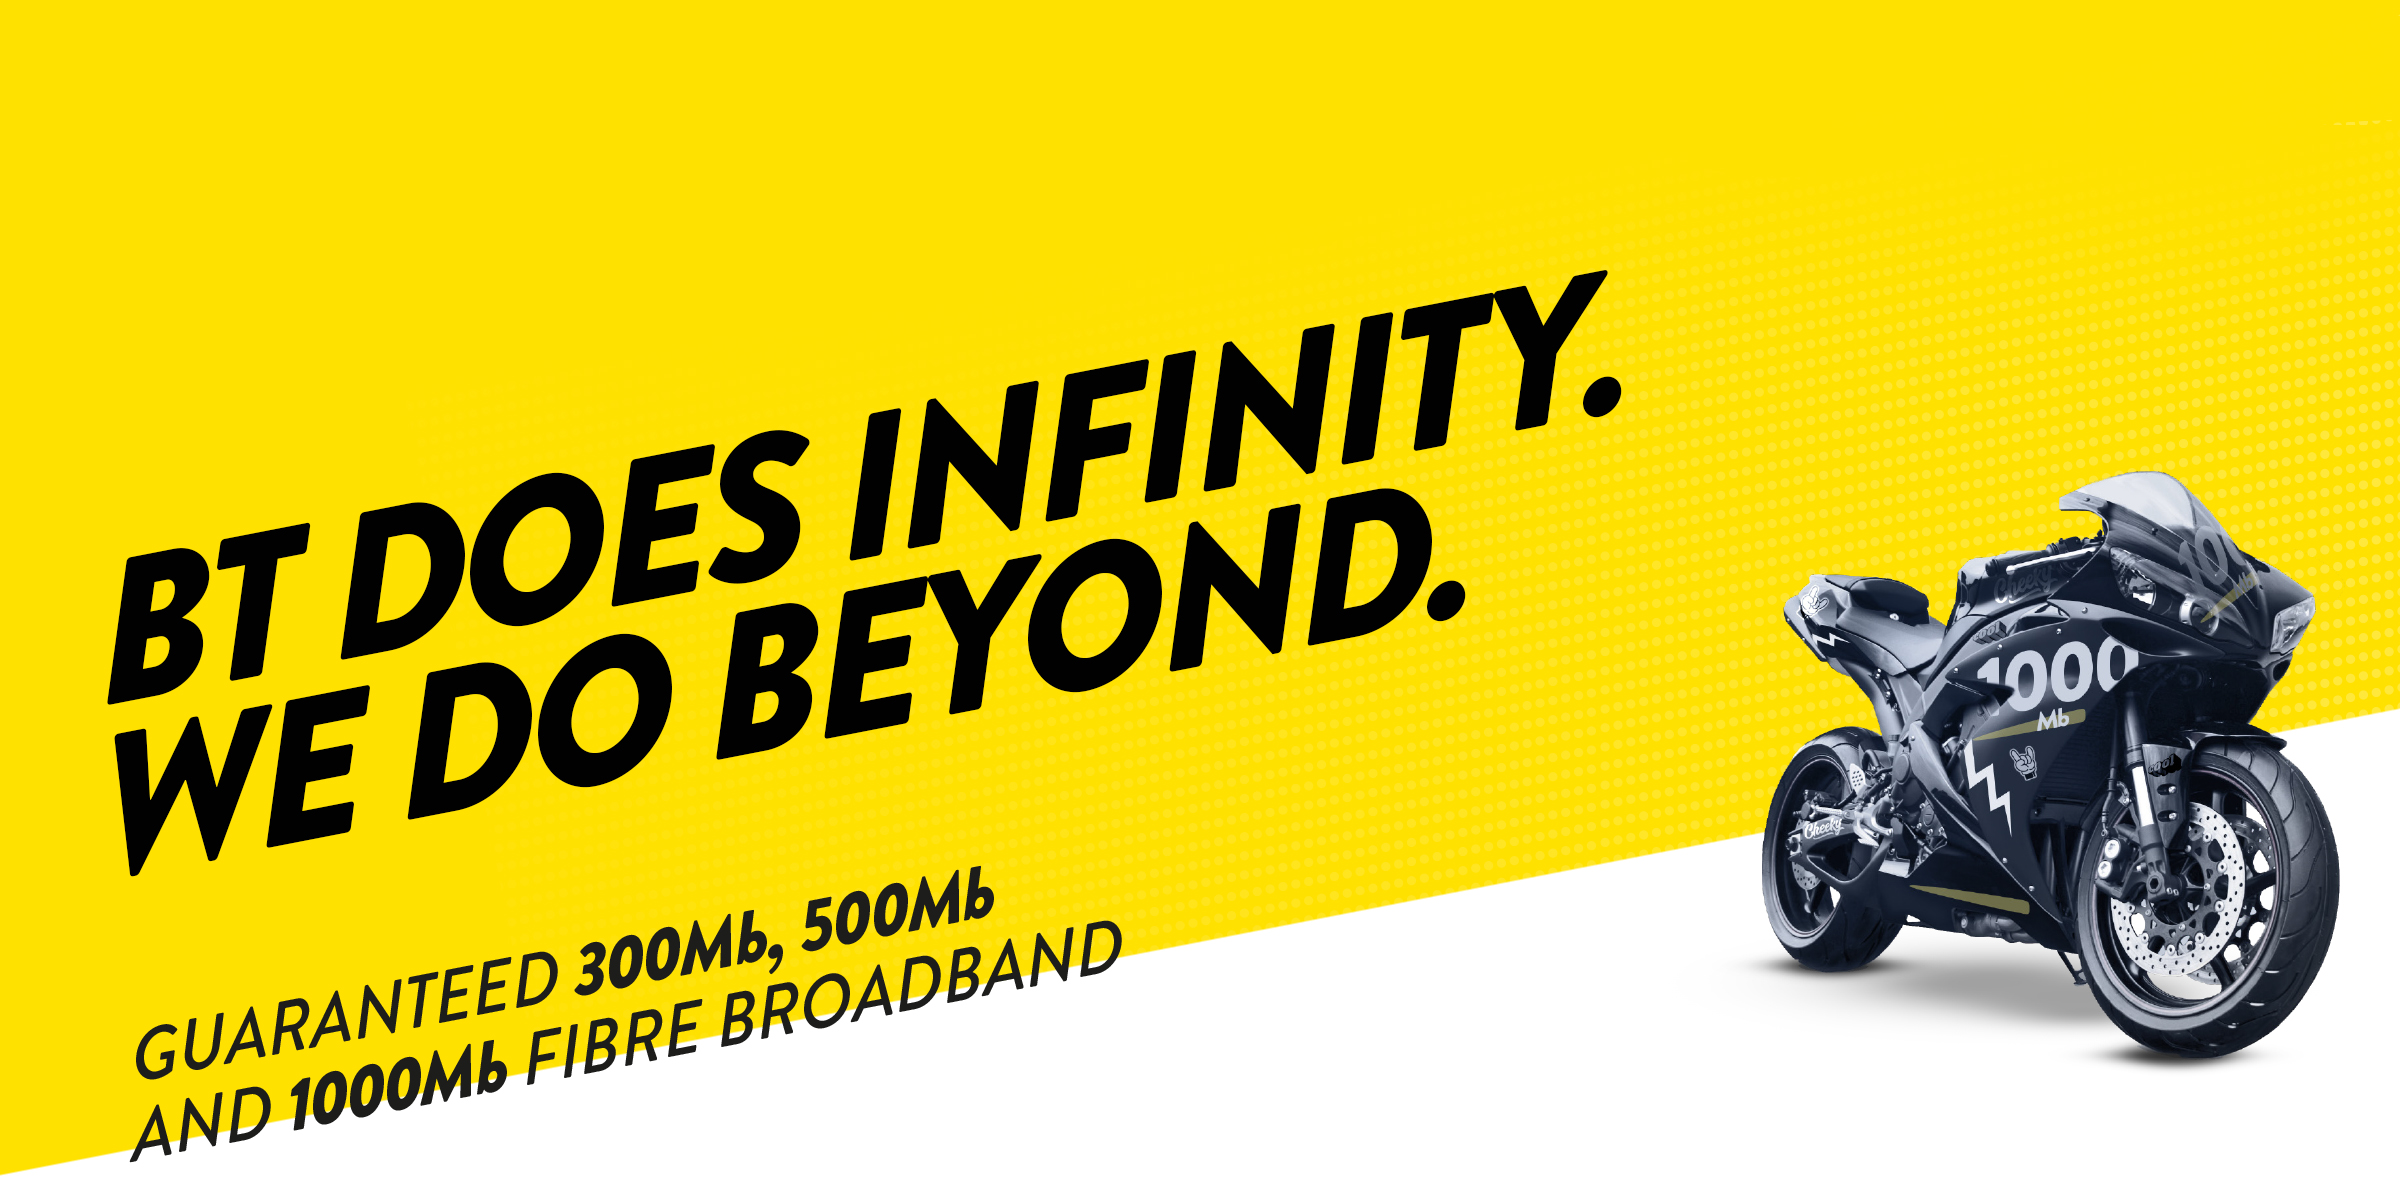 BT DOES INFINITY, WE DO BEYOND. Guaranteed 300mb, 500mb and 1000mb Fibre Broadband.